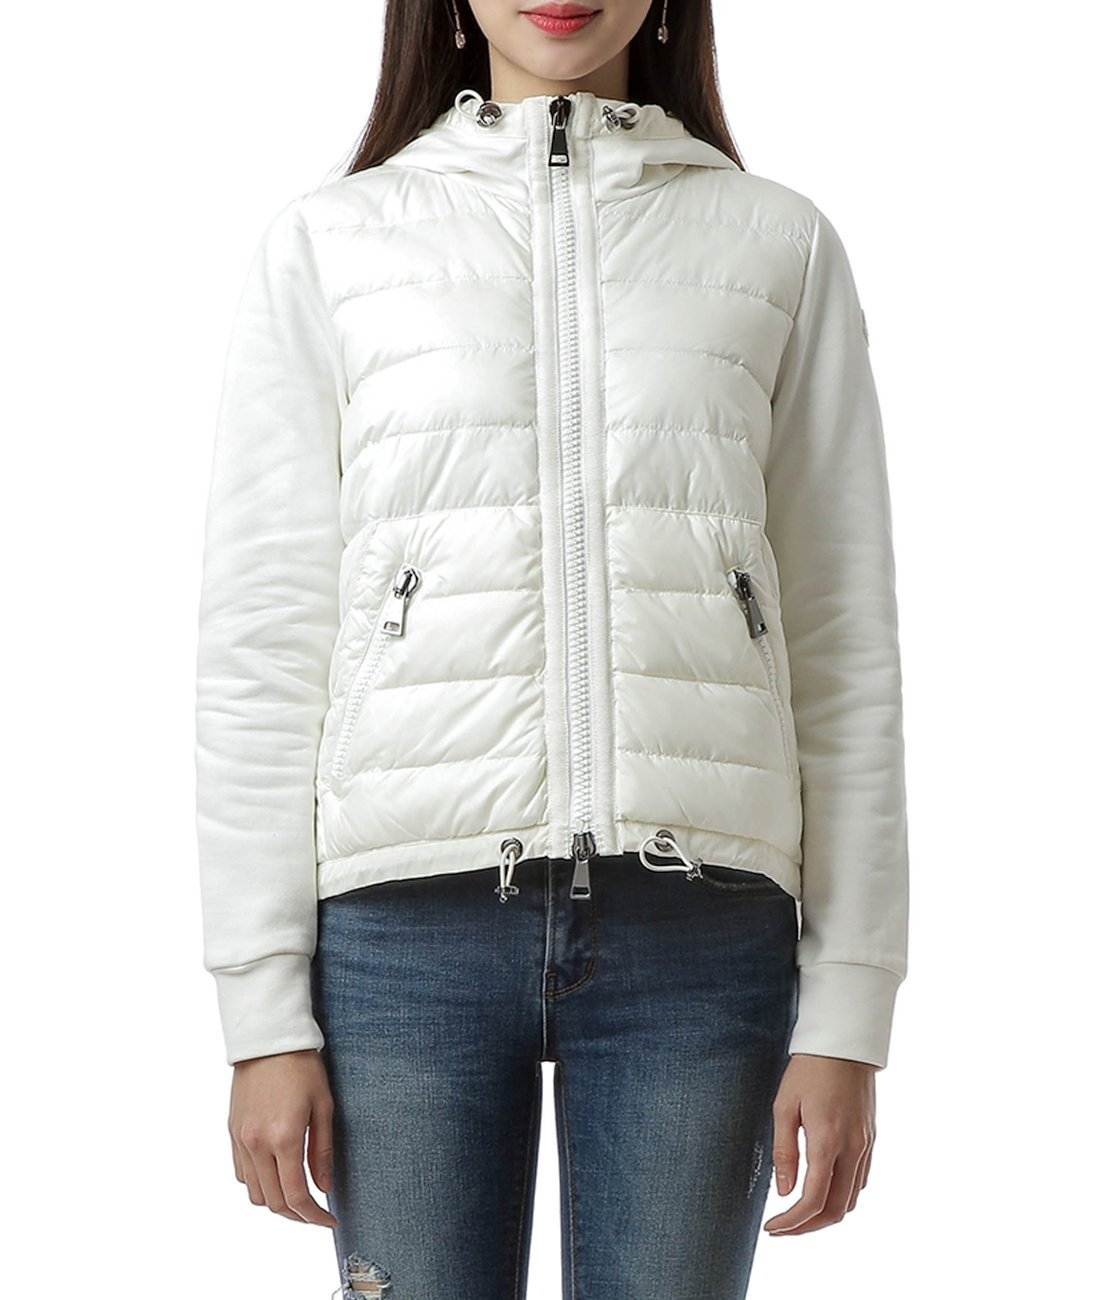 Wiberlux Moncler Women's Padded Panel Hooded Zip-Up Jacket XS Ivory by Wiberlux (Image #1)